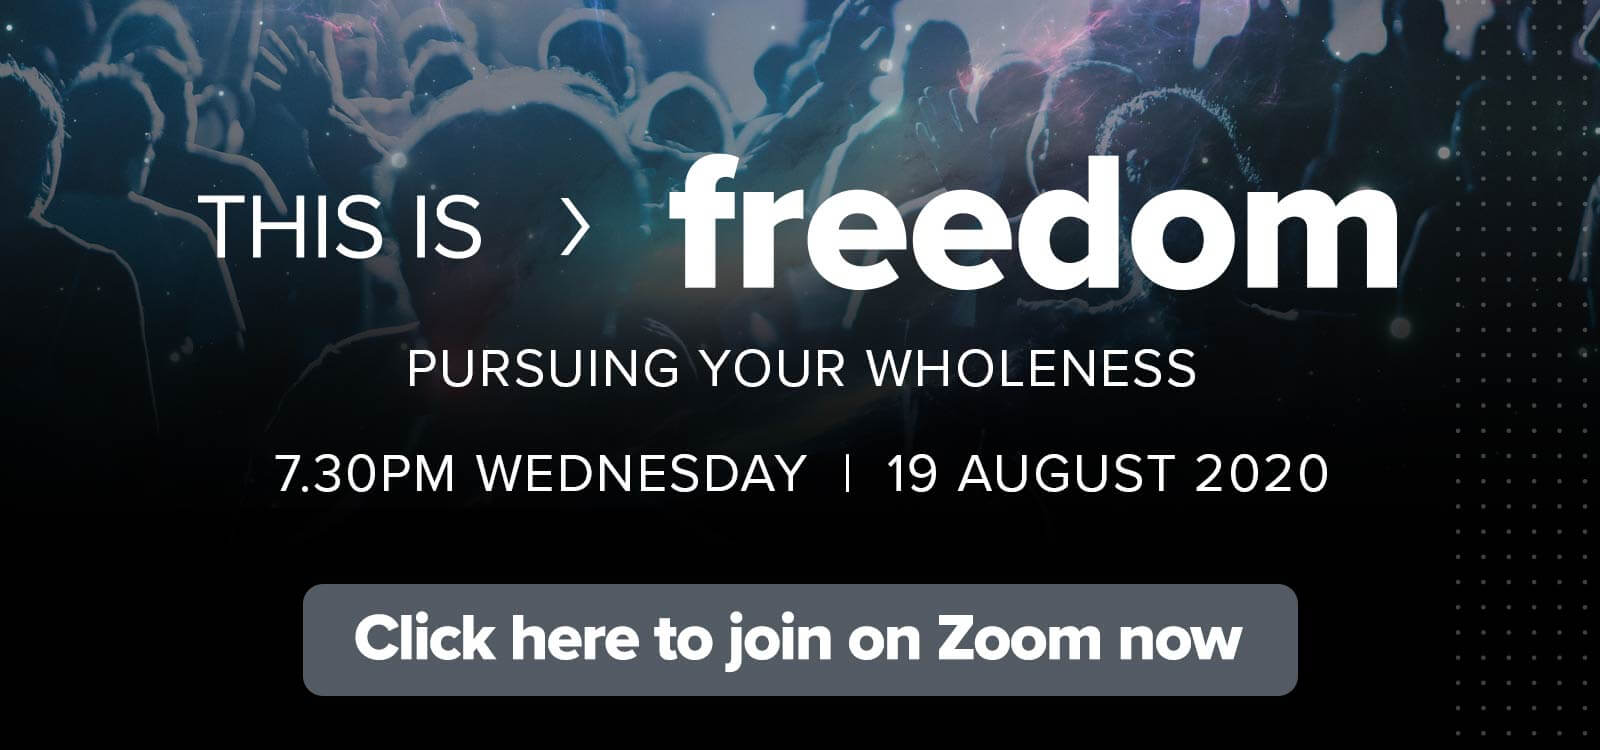 Find personal wholeness and healing at This is Freedom!